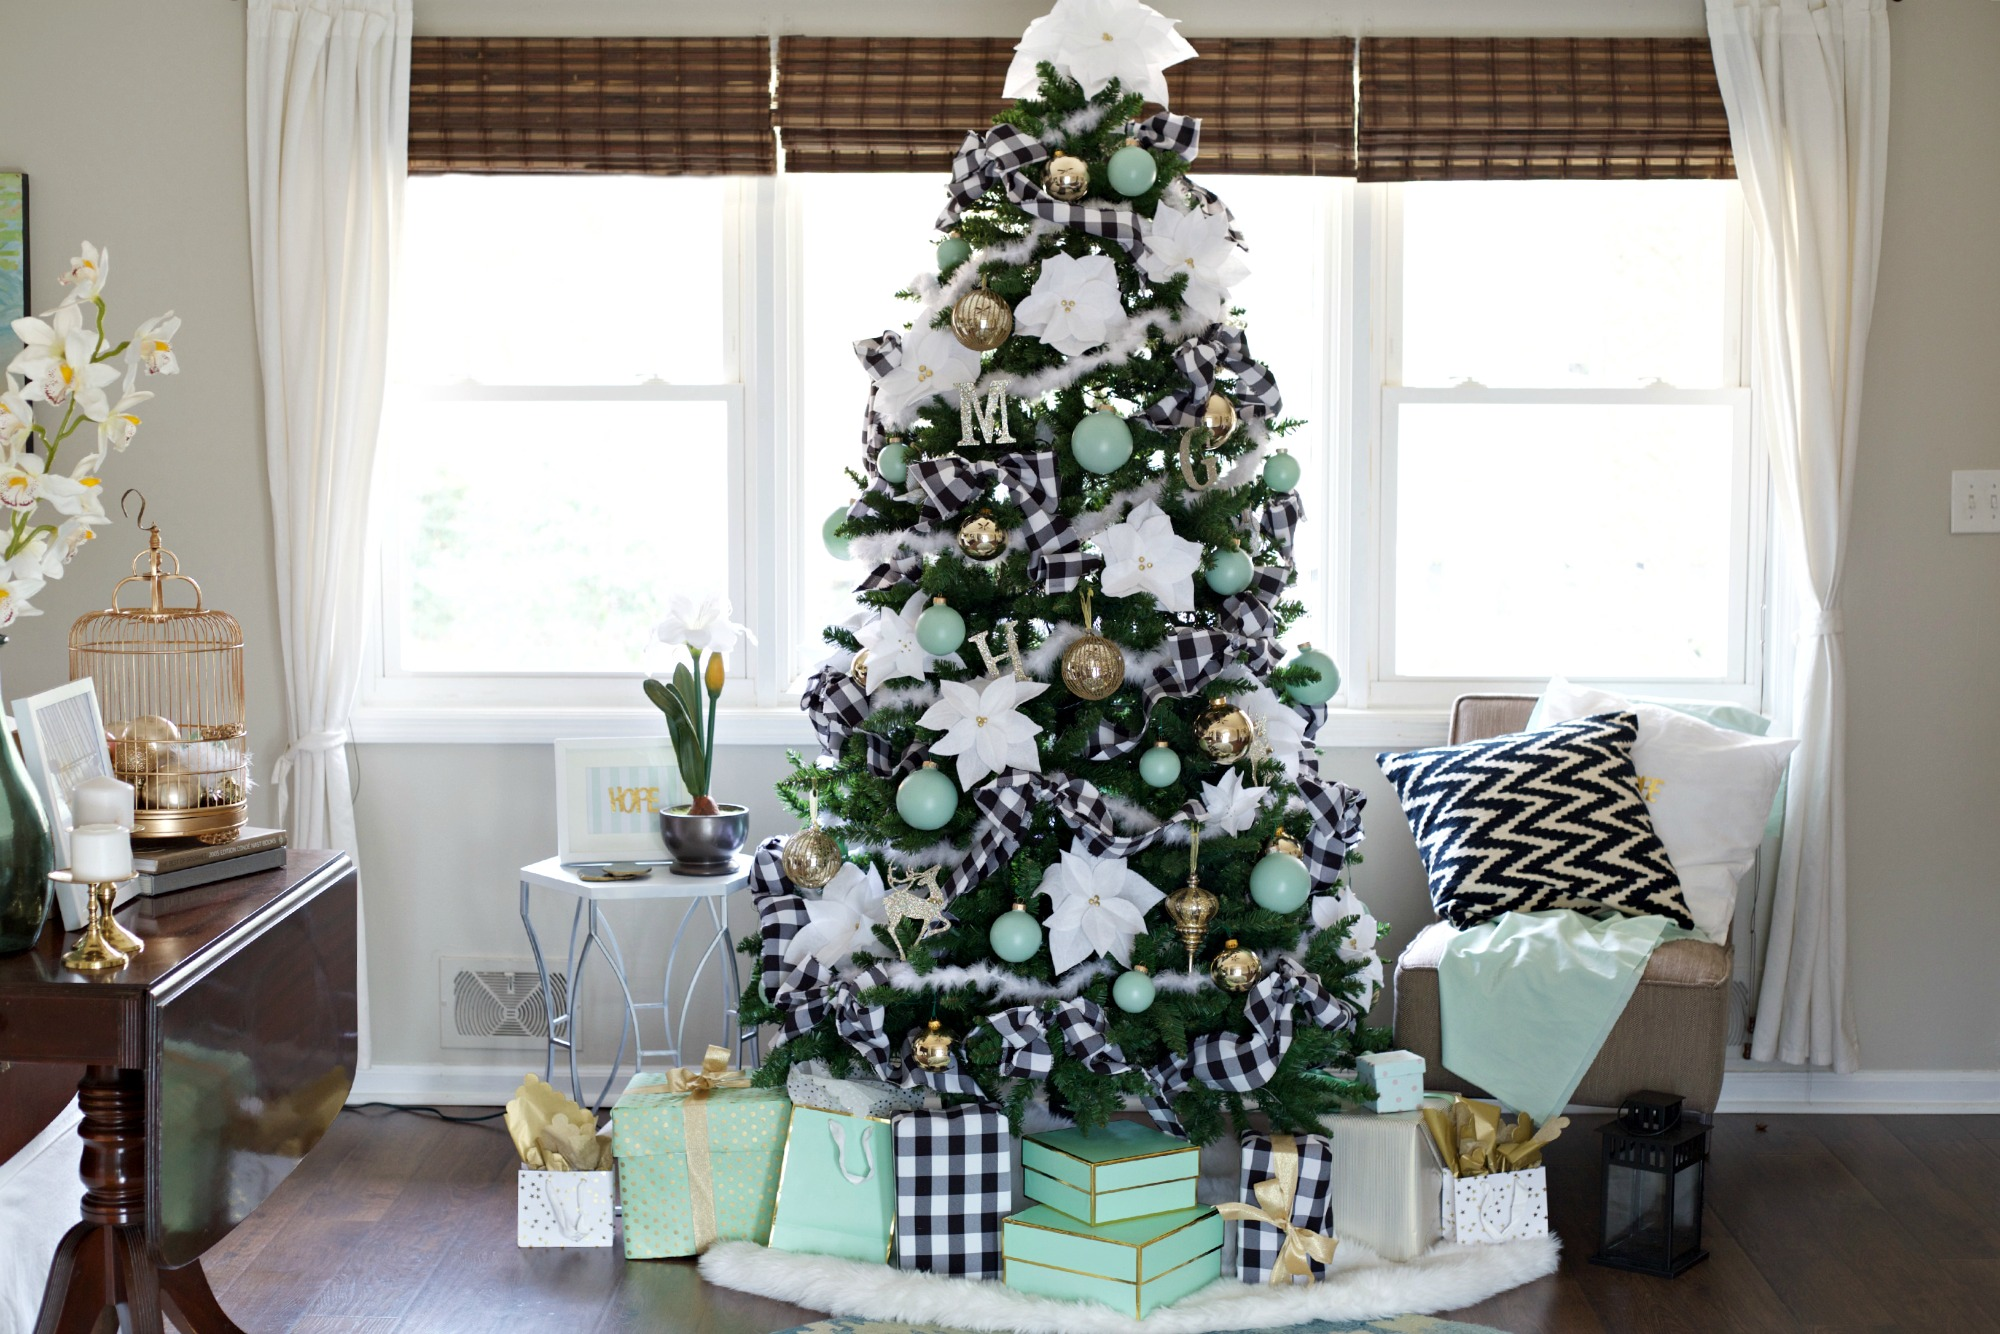 Easy Christmas Decorating Ideas | PartiesforPennies.com | Budget Friendly | Christmas Tree | Tree